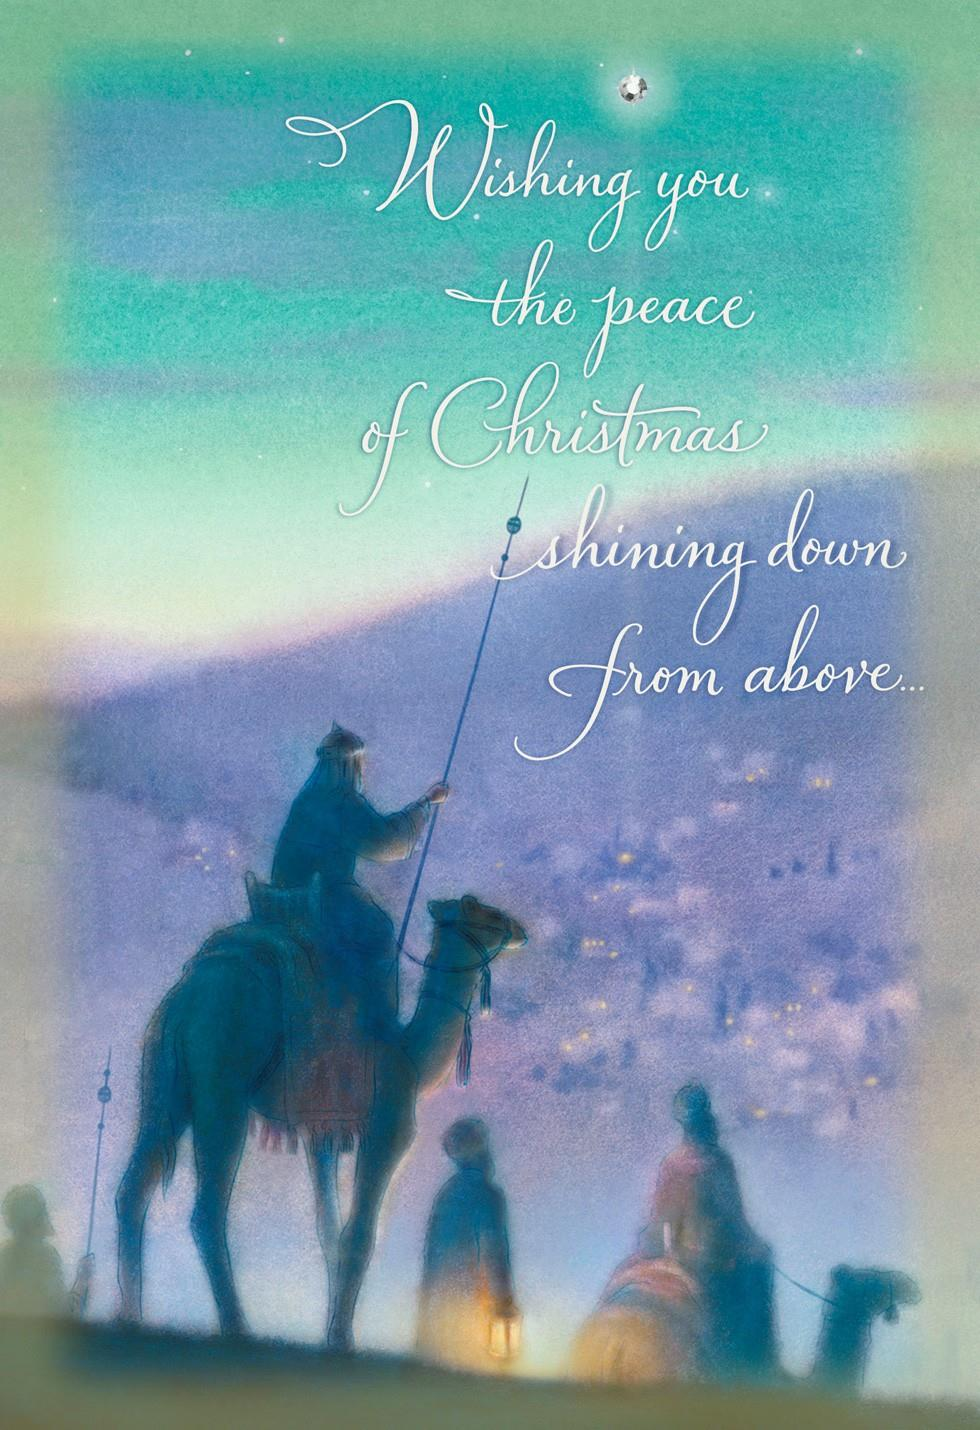 wise men religious christmas card - greeting cards